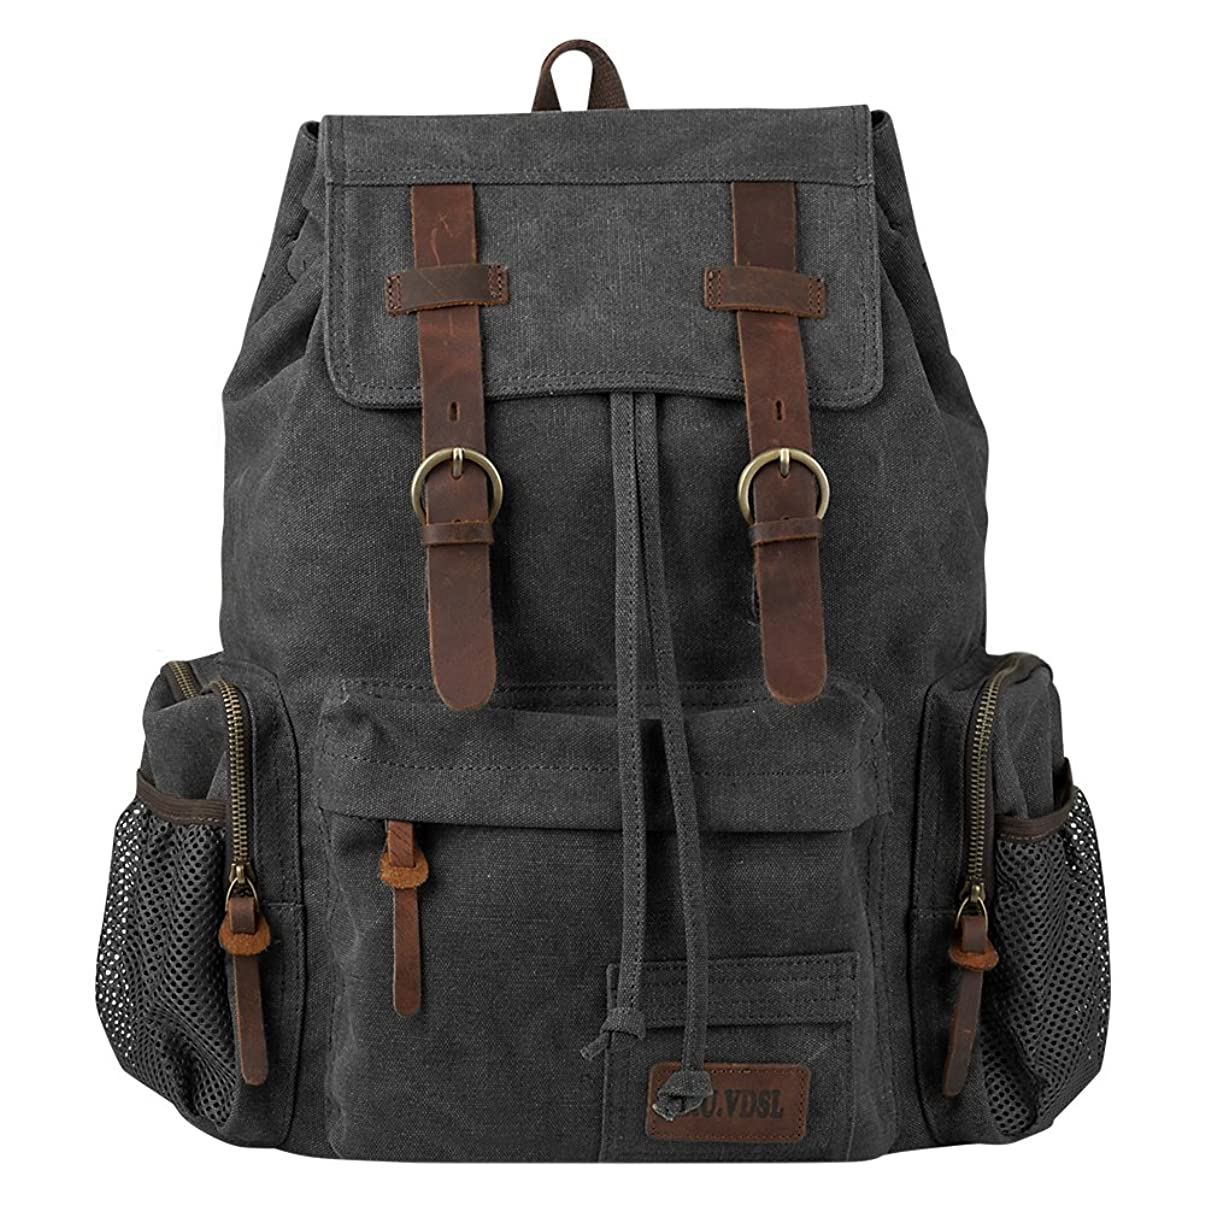 Travel Laptop Backpack, P.KU.VDSL Vintage Backpack Canvas Rucksack for Women Men, Retro School Bookbag Fit 17'' Laptop